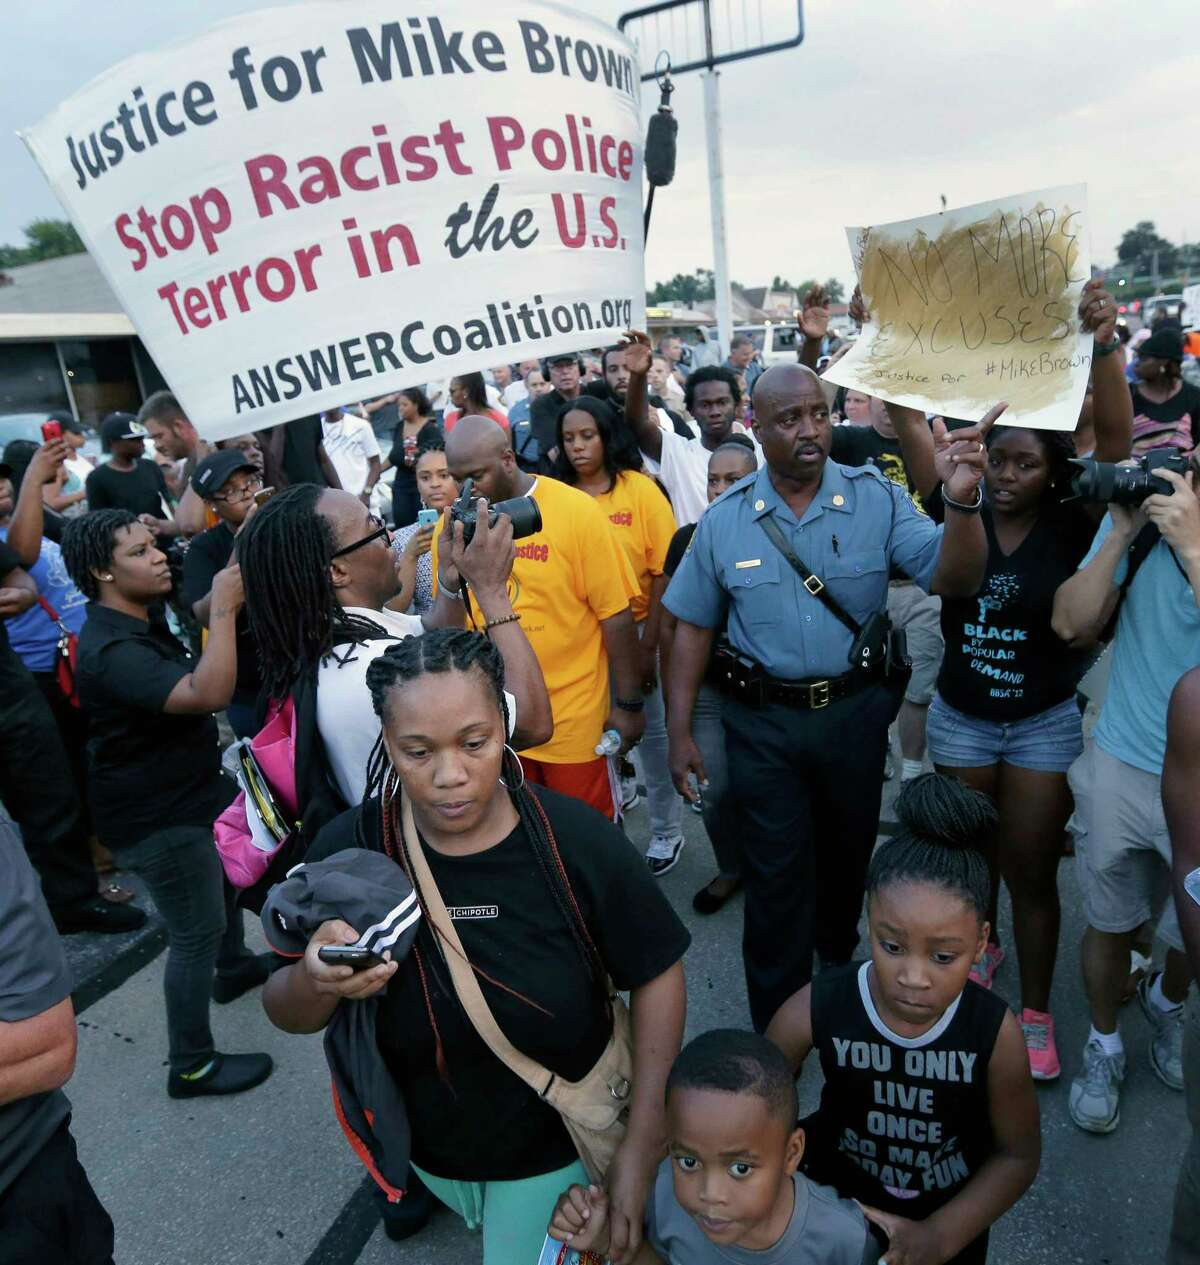 In this Aug. 16, 2014 photo, Missouri Highway Patrol Capt. Ron Johnson walks among people protesting the police shooting death of Michael Brown in Ferguson, Mo.